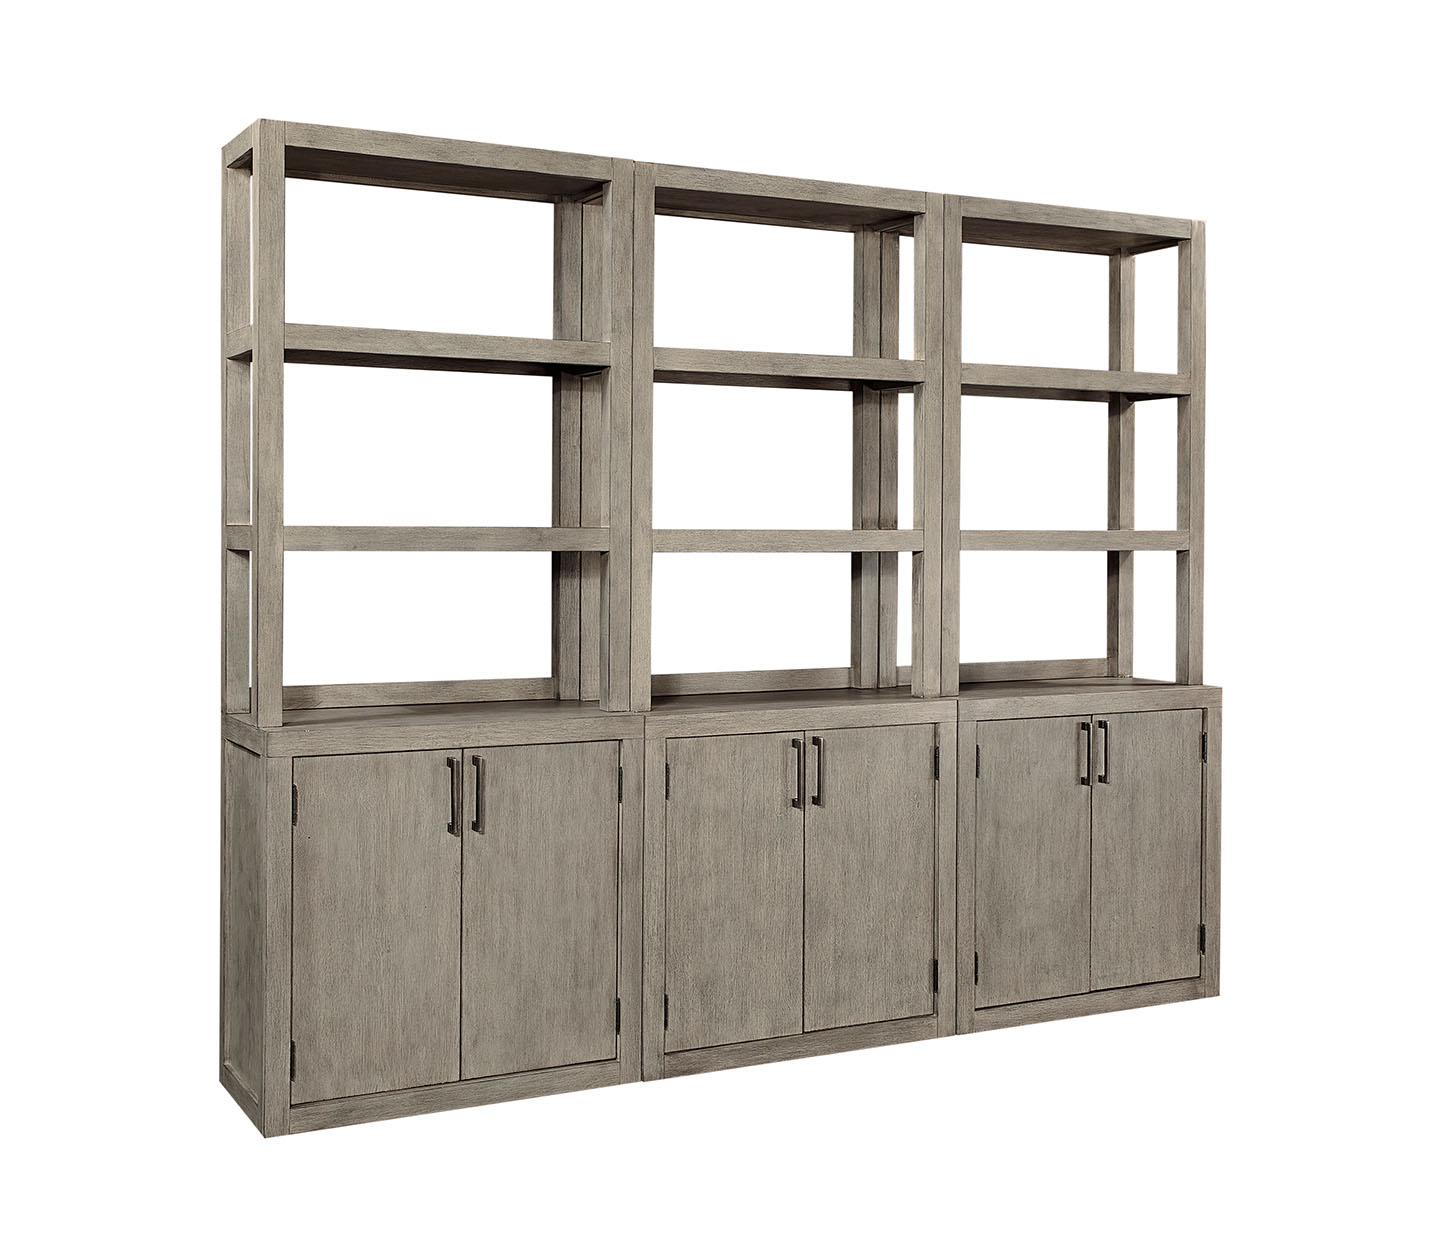 Platinum Door Bookcase in the Gray Linen finish